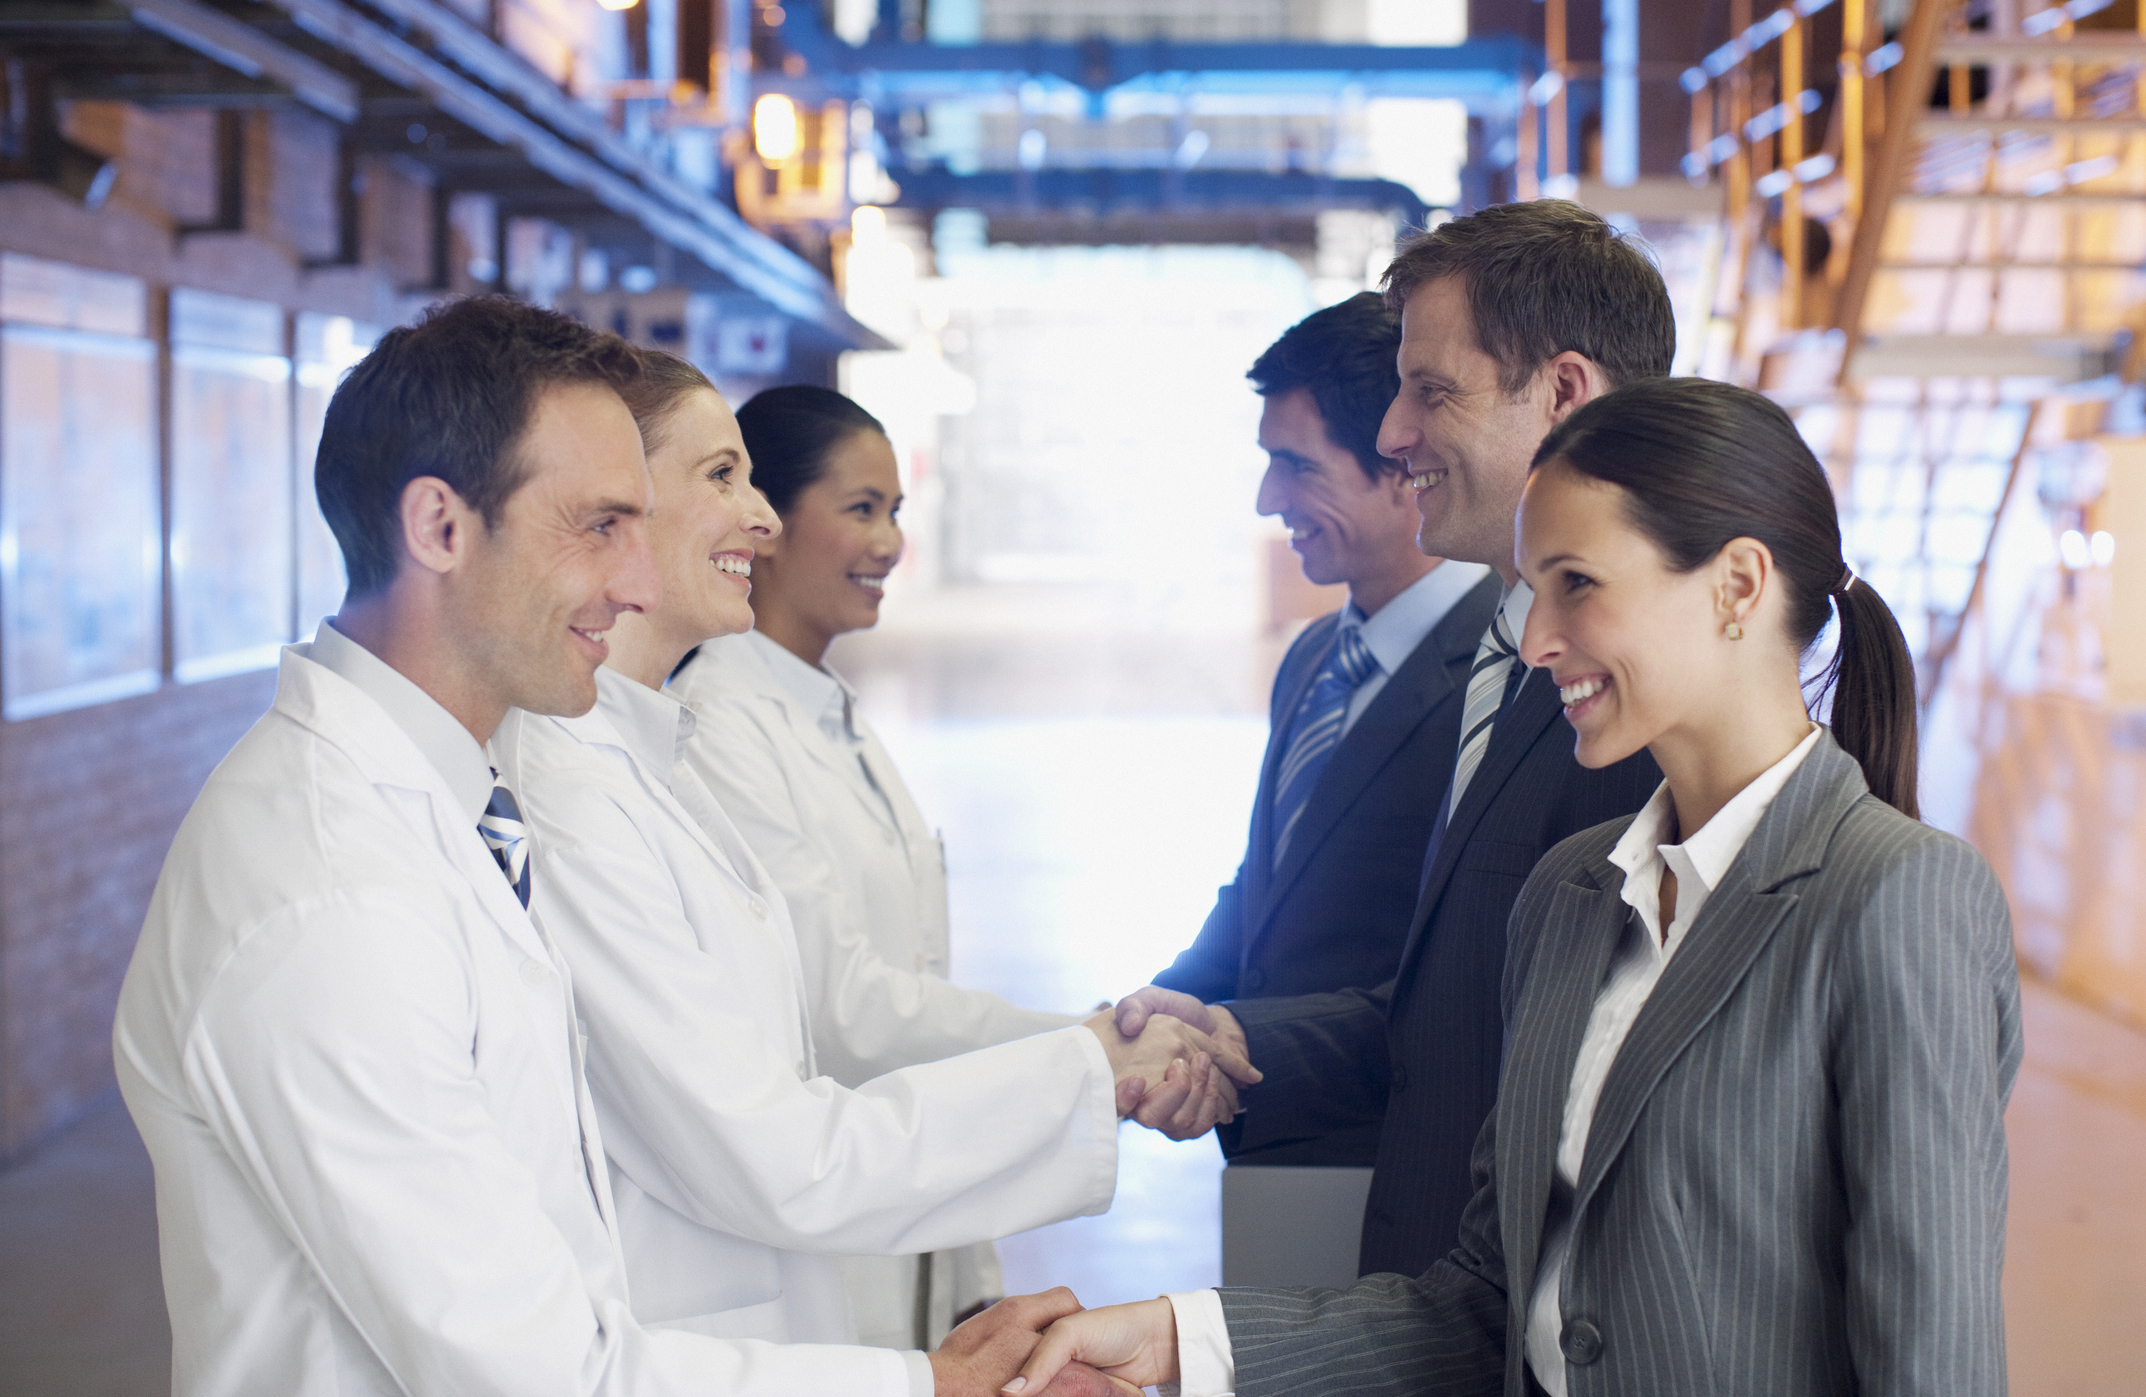 Image of Scientists shaking hands with Business men & women